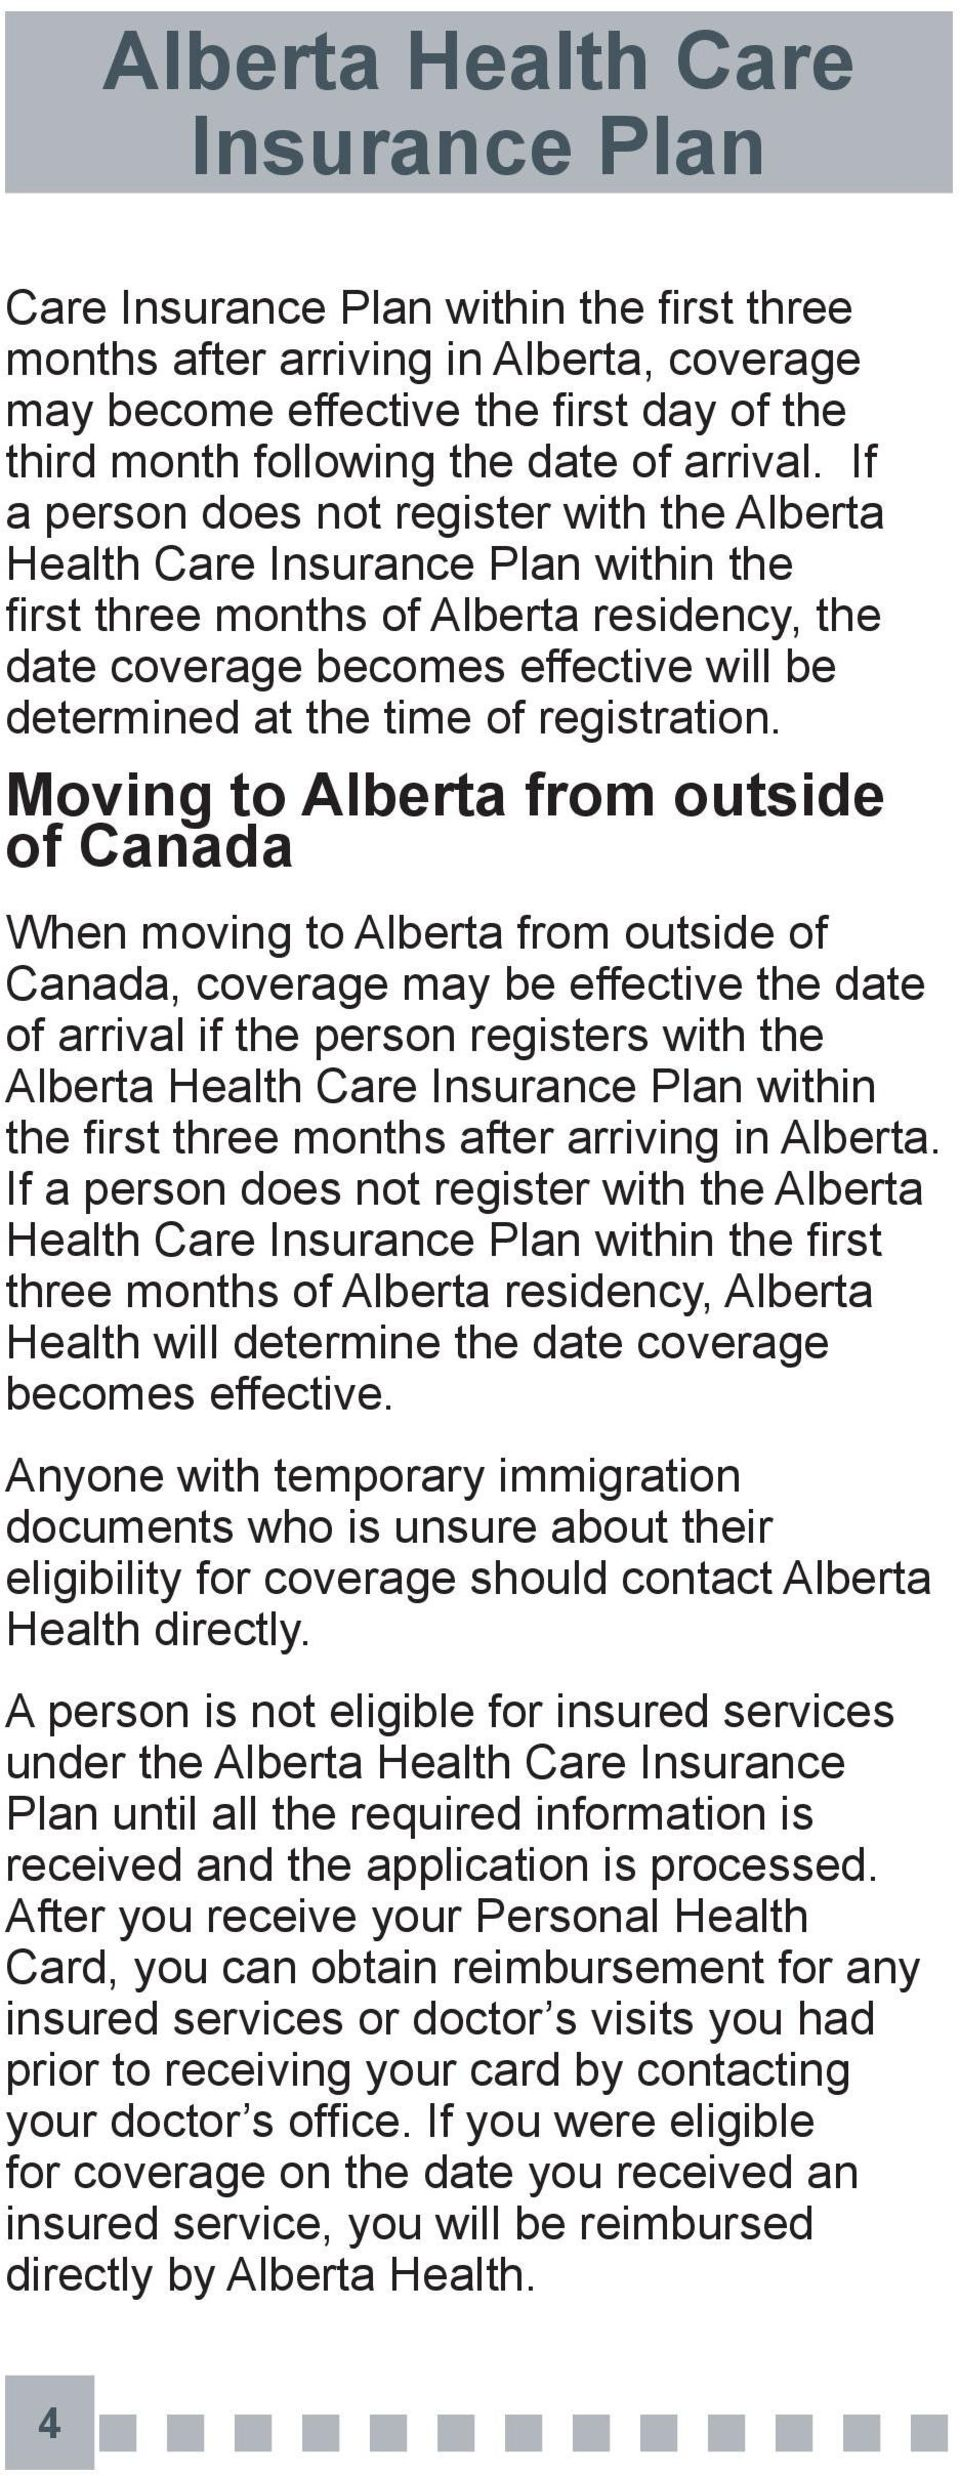 Moving to Alberta from outside of Canada When moving to Alberta from outside of Canada, coverage may be effective the date of arrival if the person registers with the Alberta Health Care within the